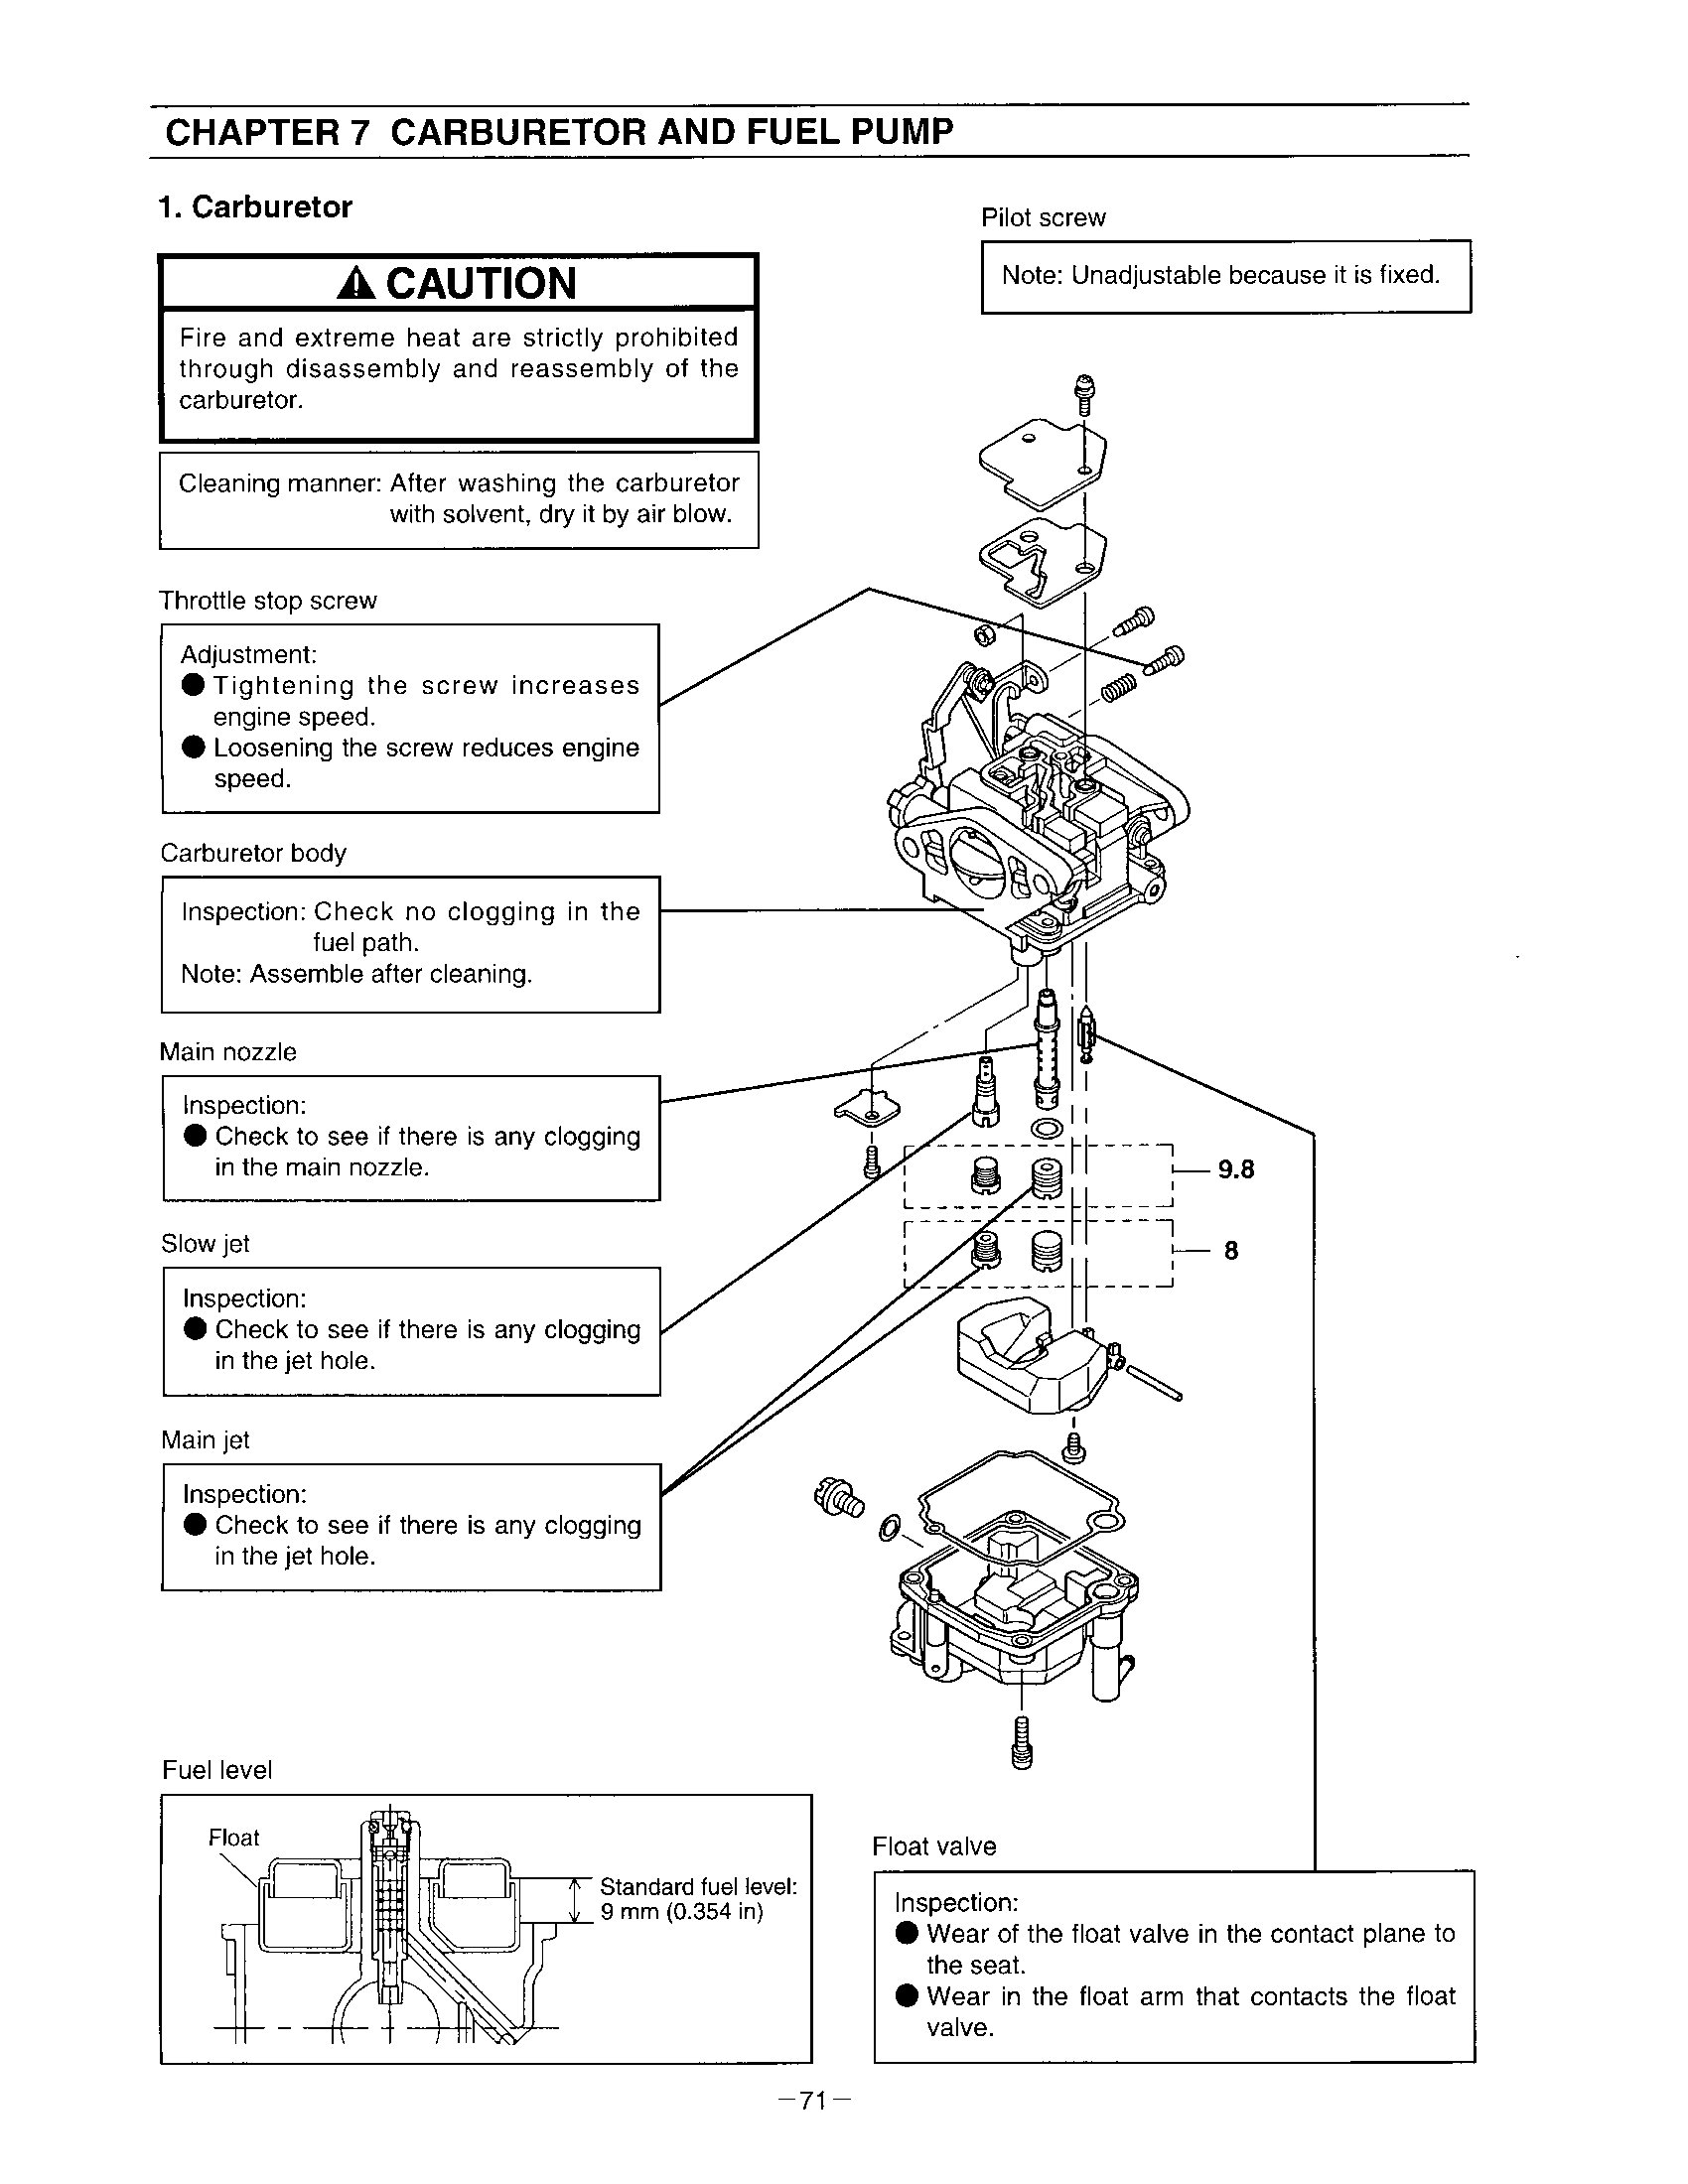 A page from an owner's manual on how to adjust a carburetor. While specific to one model, it is generally the same for all four stroke outboards.